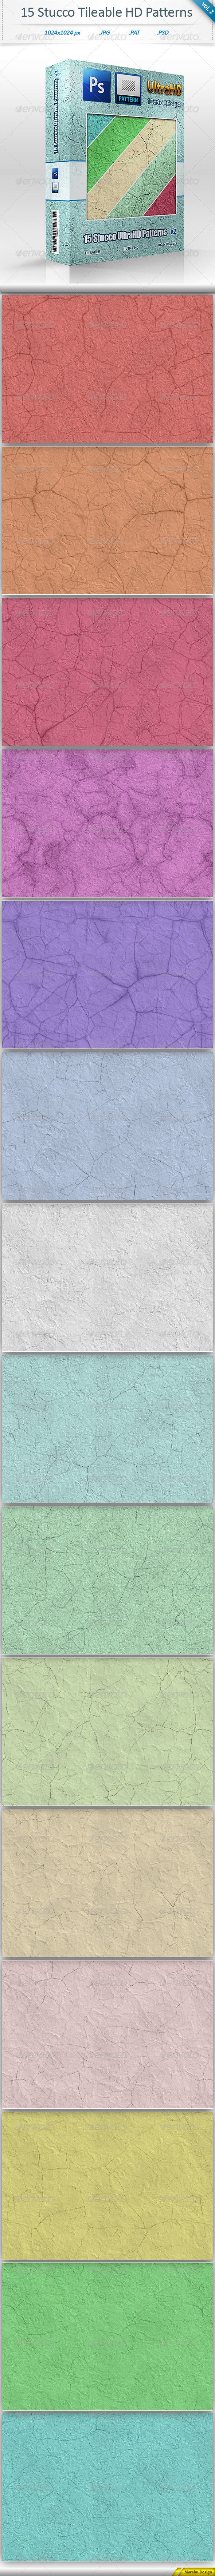 GraphicRiver Stucco Tileable Patterns vol 2 8511521